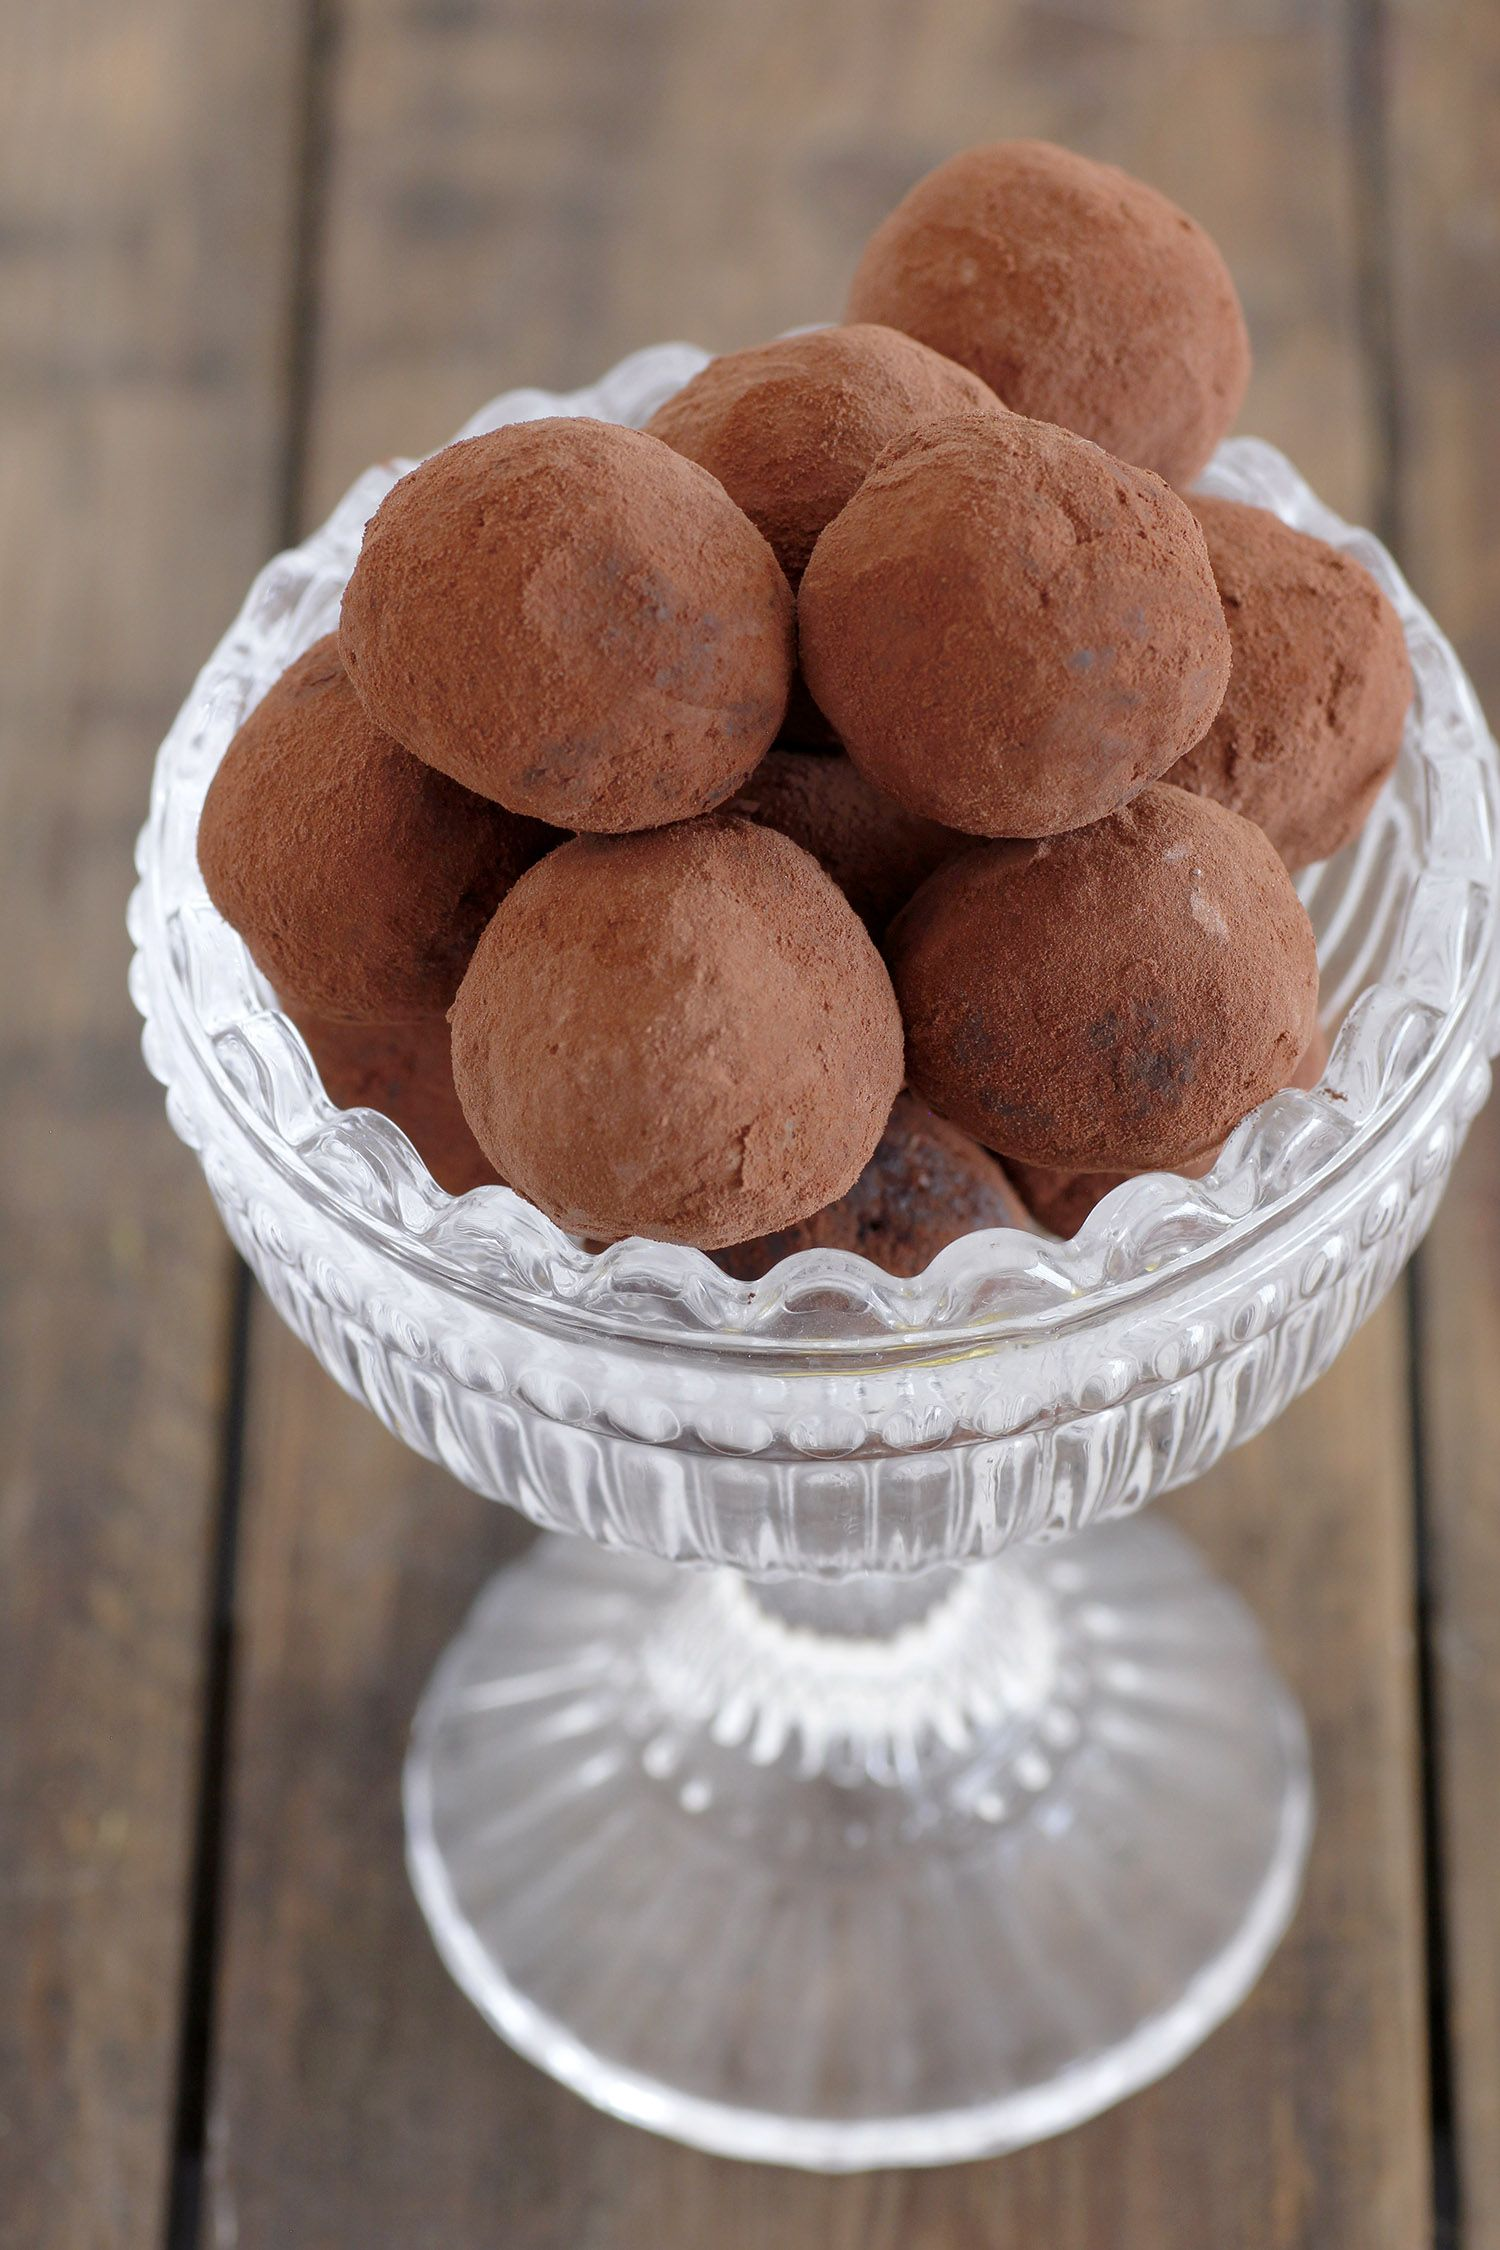 Vegan Chocolate Truffles with Dates